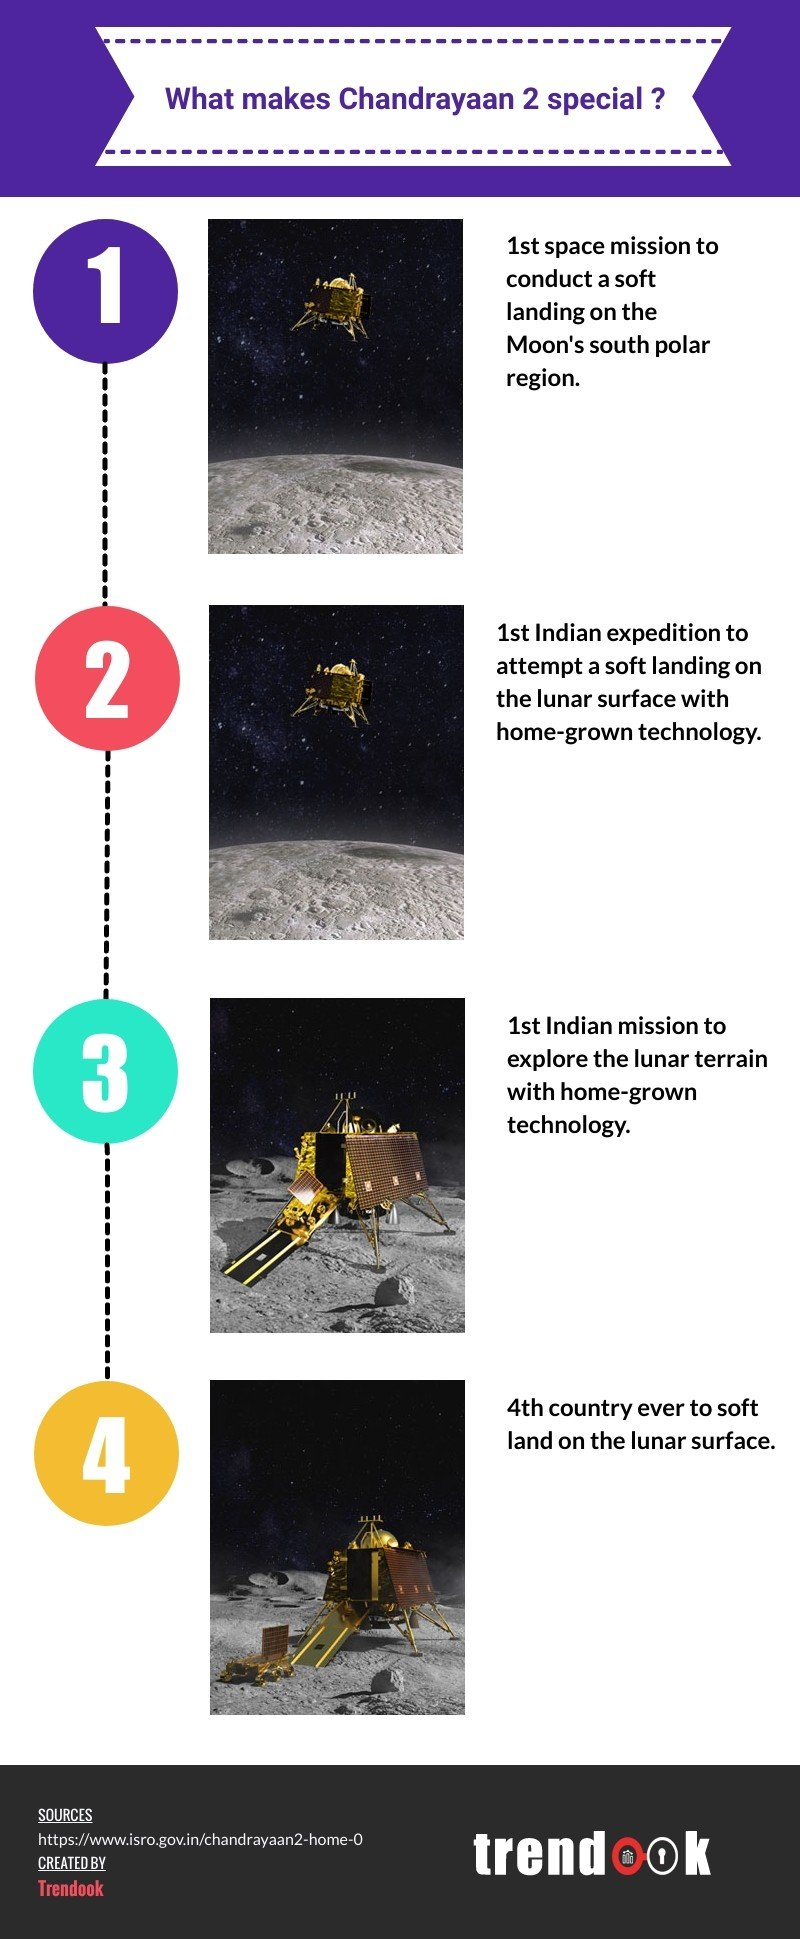 What makes Chandrayaan-2 special?